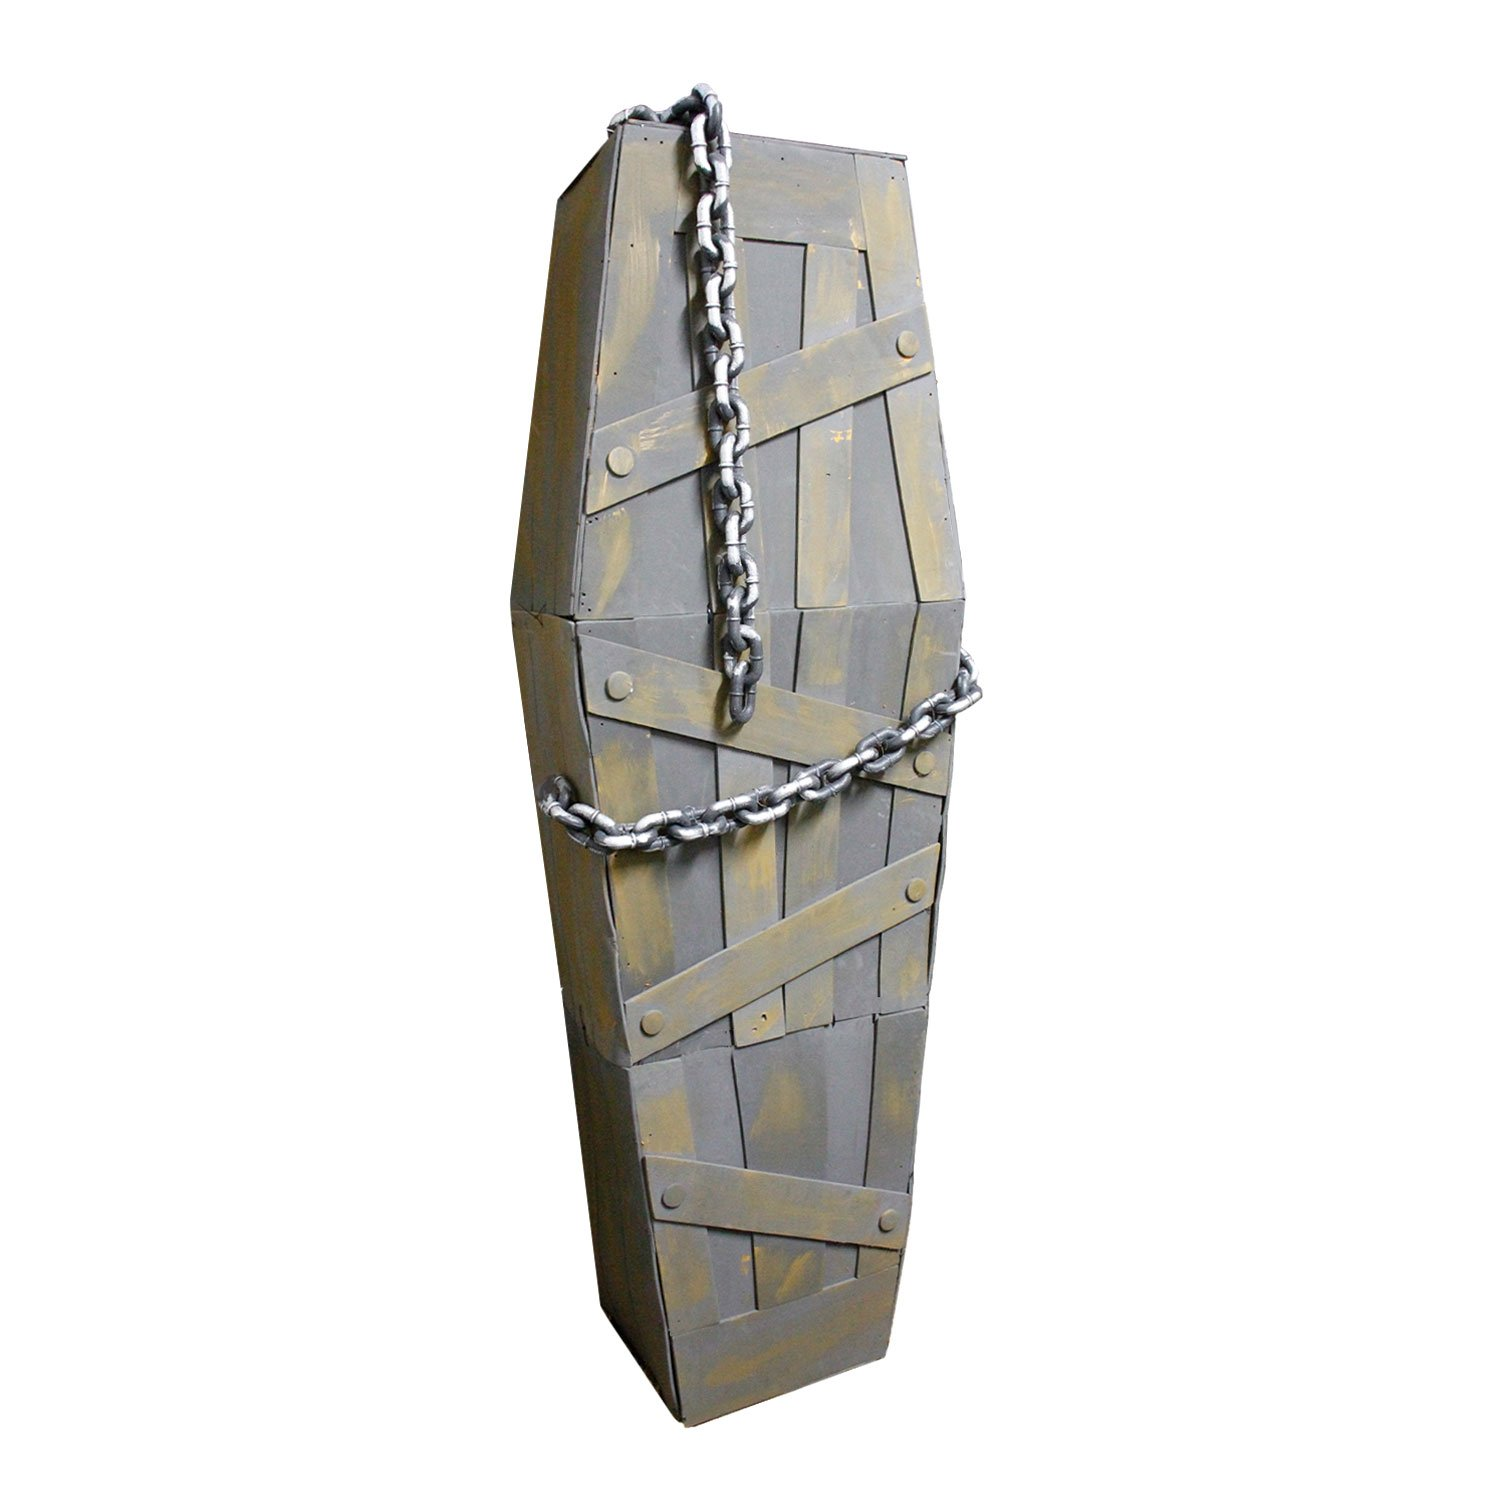 Halloween Haunters 5' 4'' Life Sized Animated Shaking Coffin Prop Decoration - Speaking Grave Corpse, Death, Skeleton, Haunted House - Battery Operated